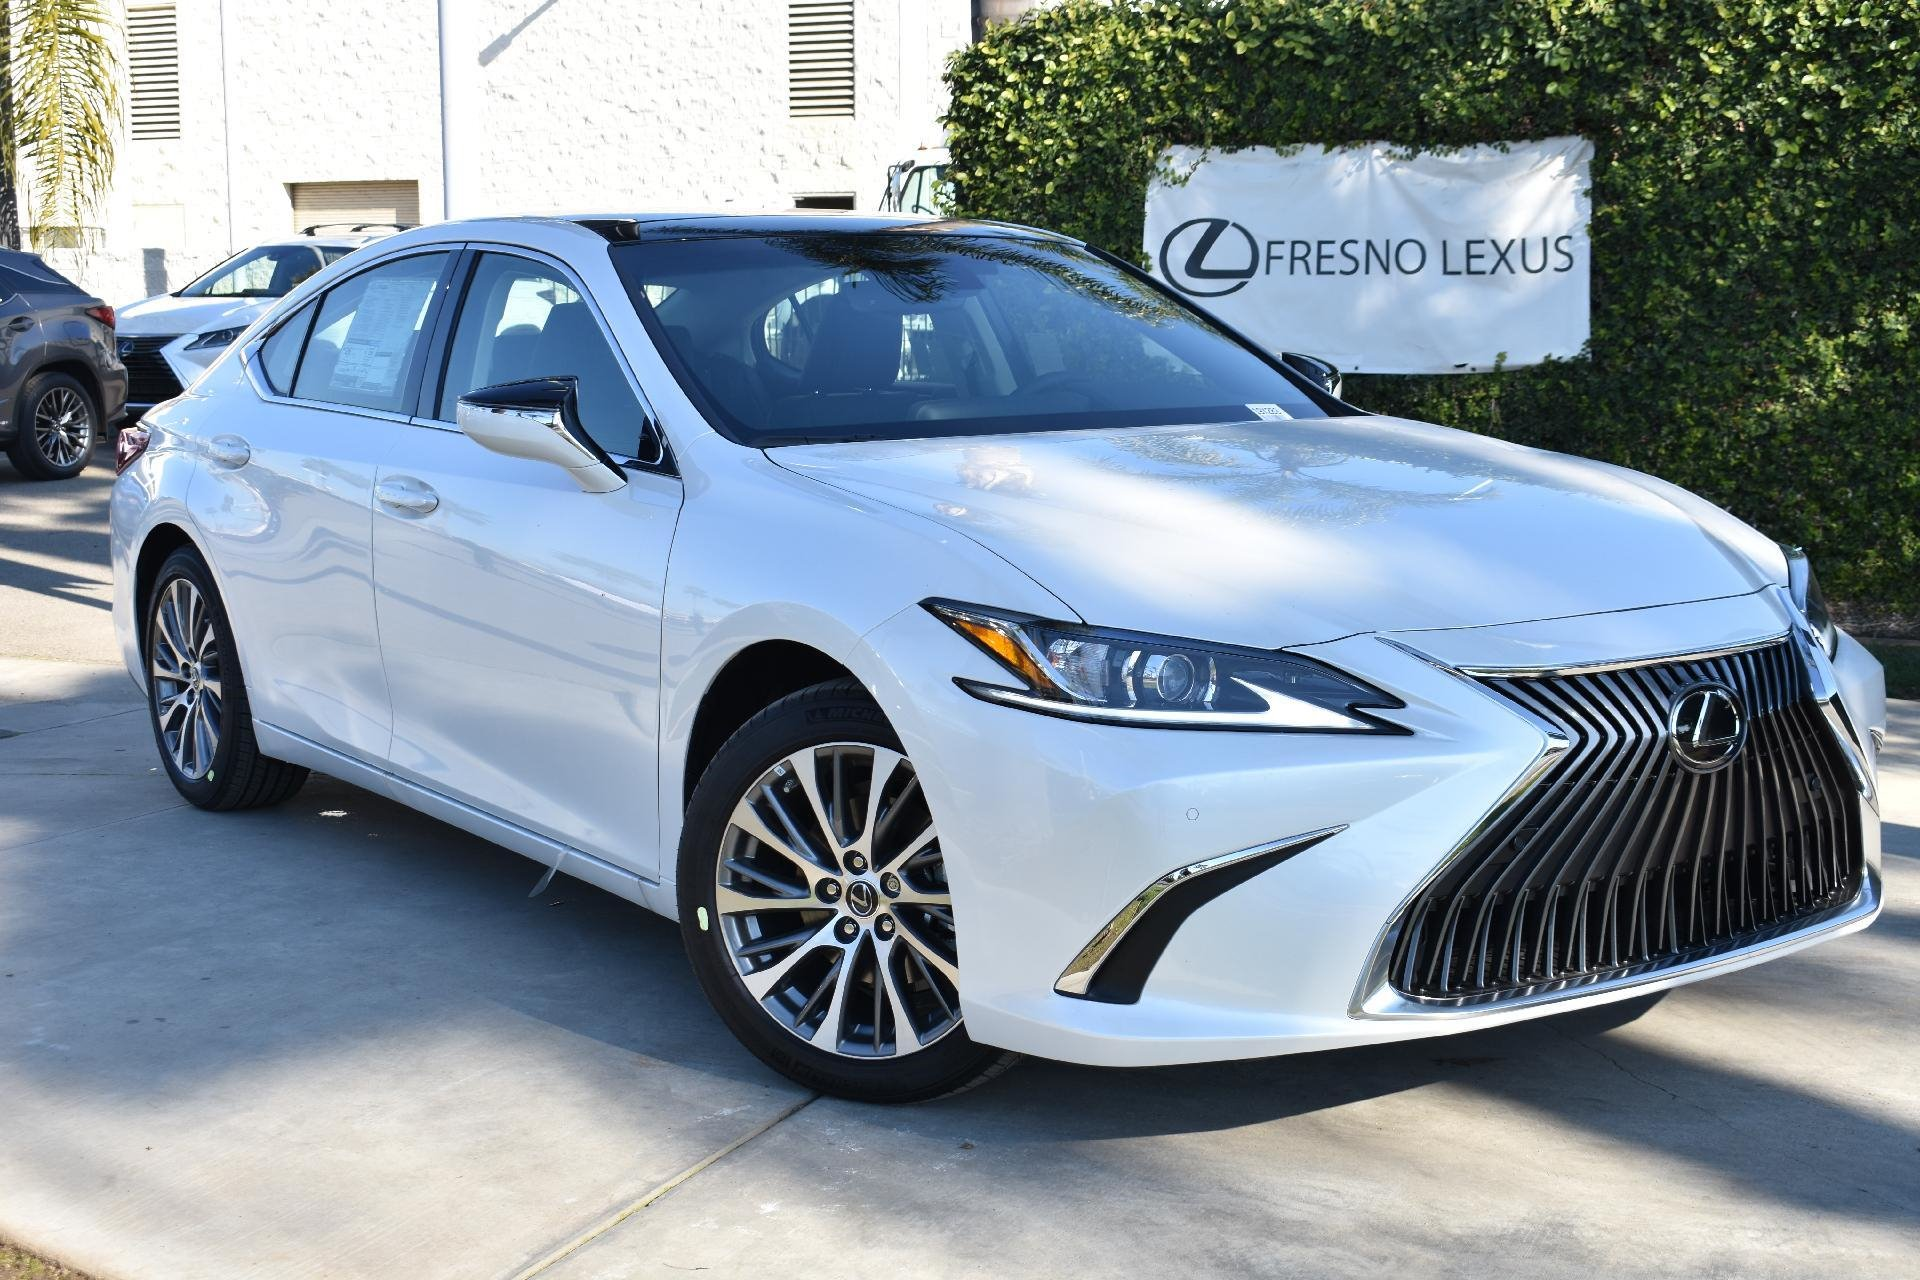 New 2019 Lexus ES 350 F SPORT F SPORT for sale $44,285 at M and V Leasing in Brooklyn NY 11223 1